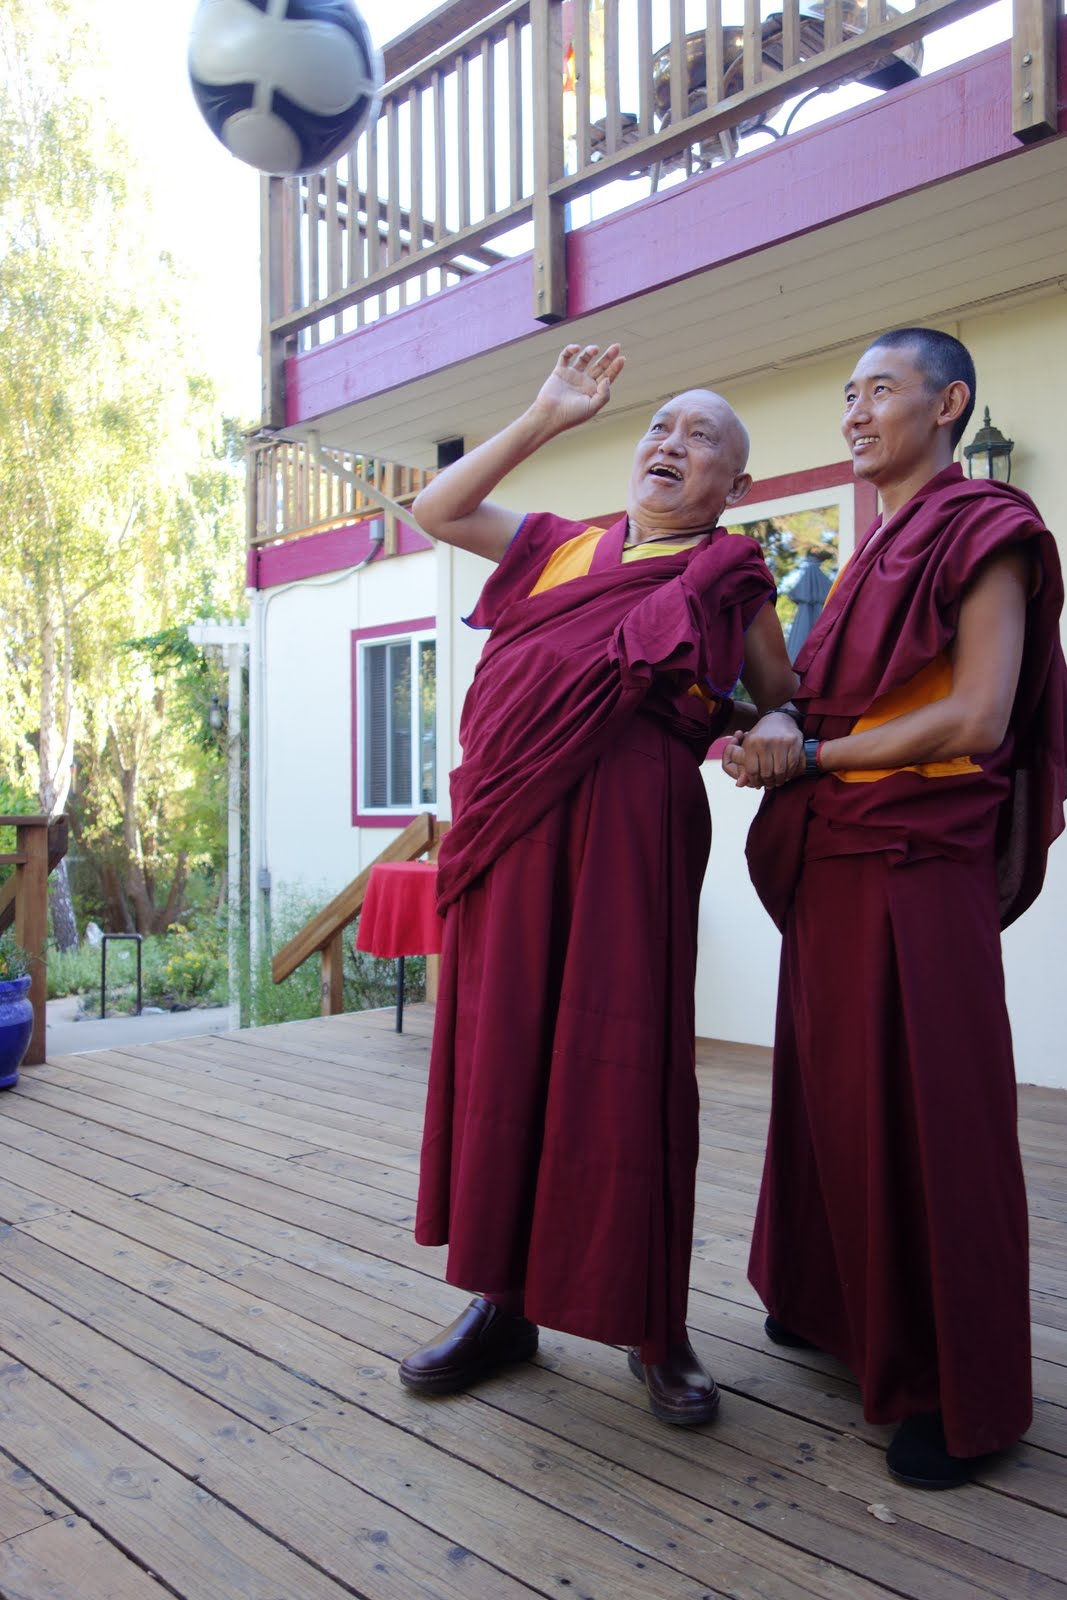 Rinpoche getting some exercise with the assistance of Ven. Sangpo.